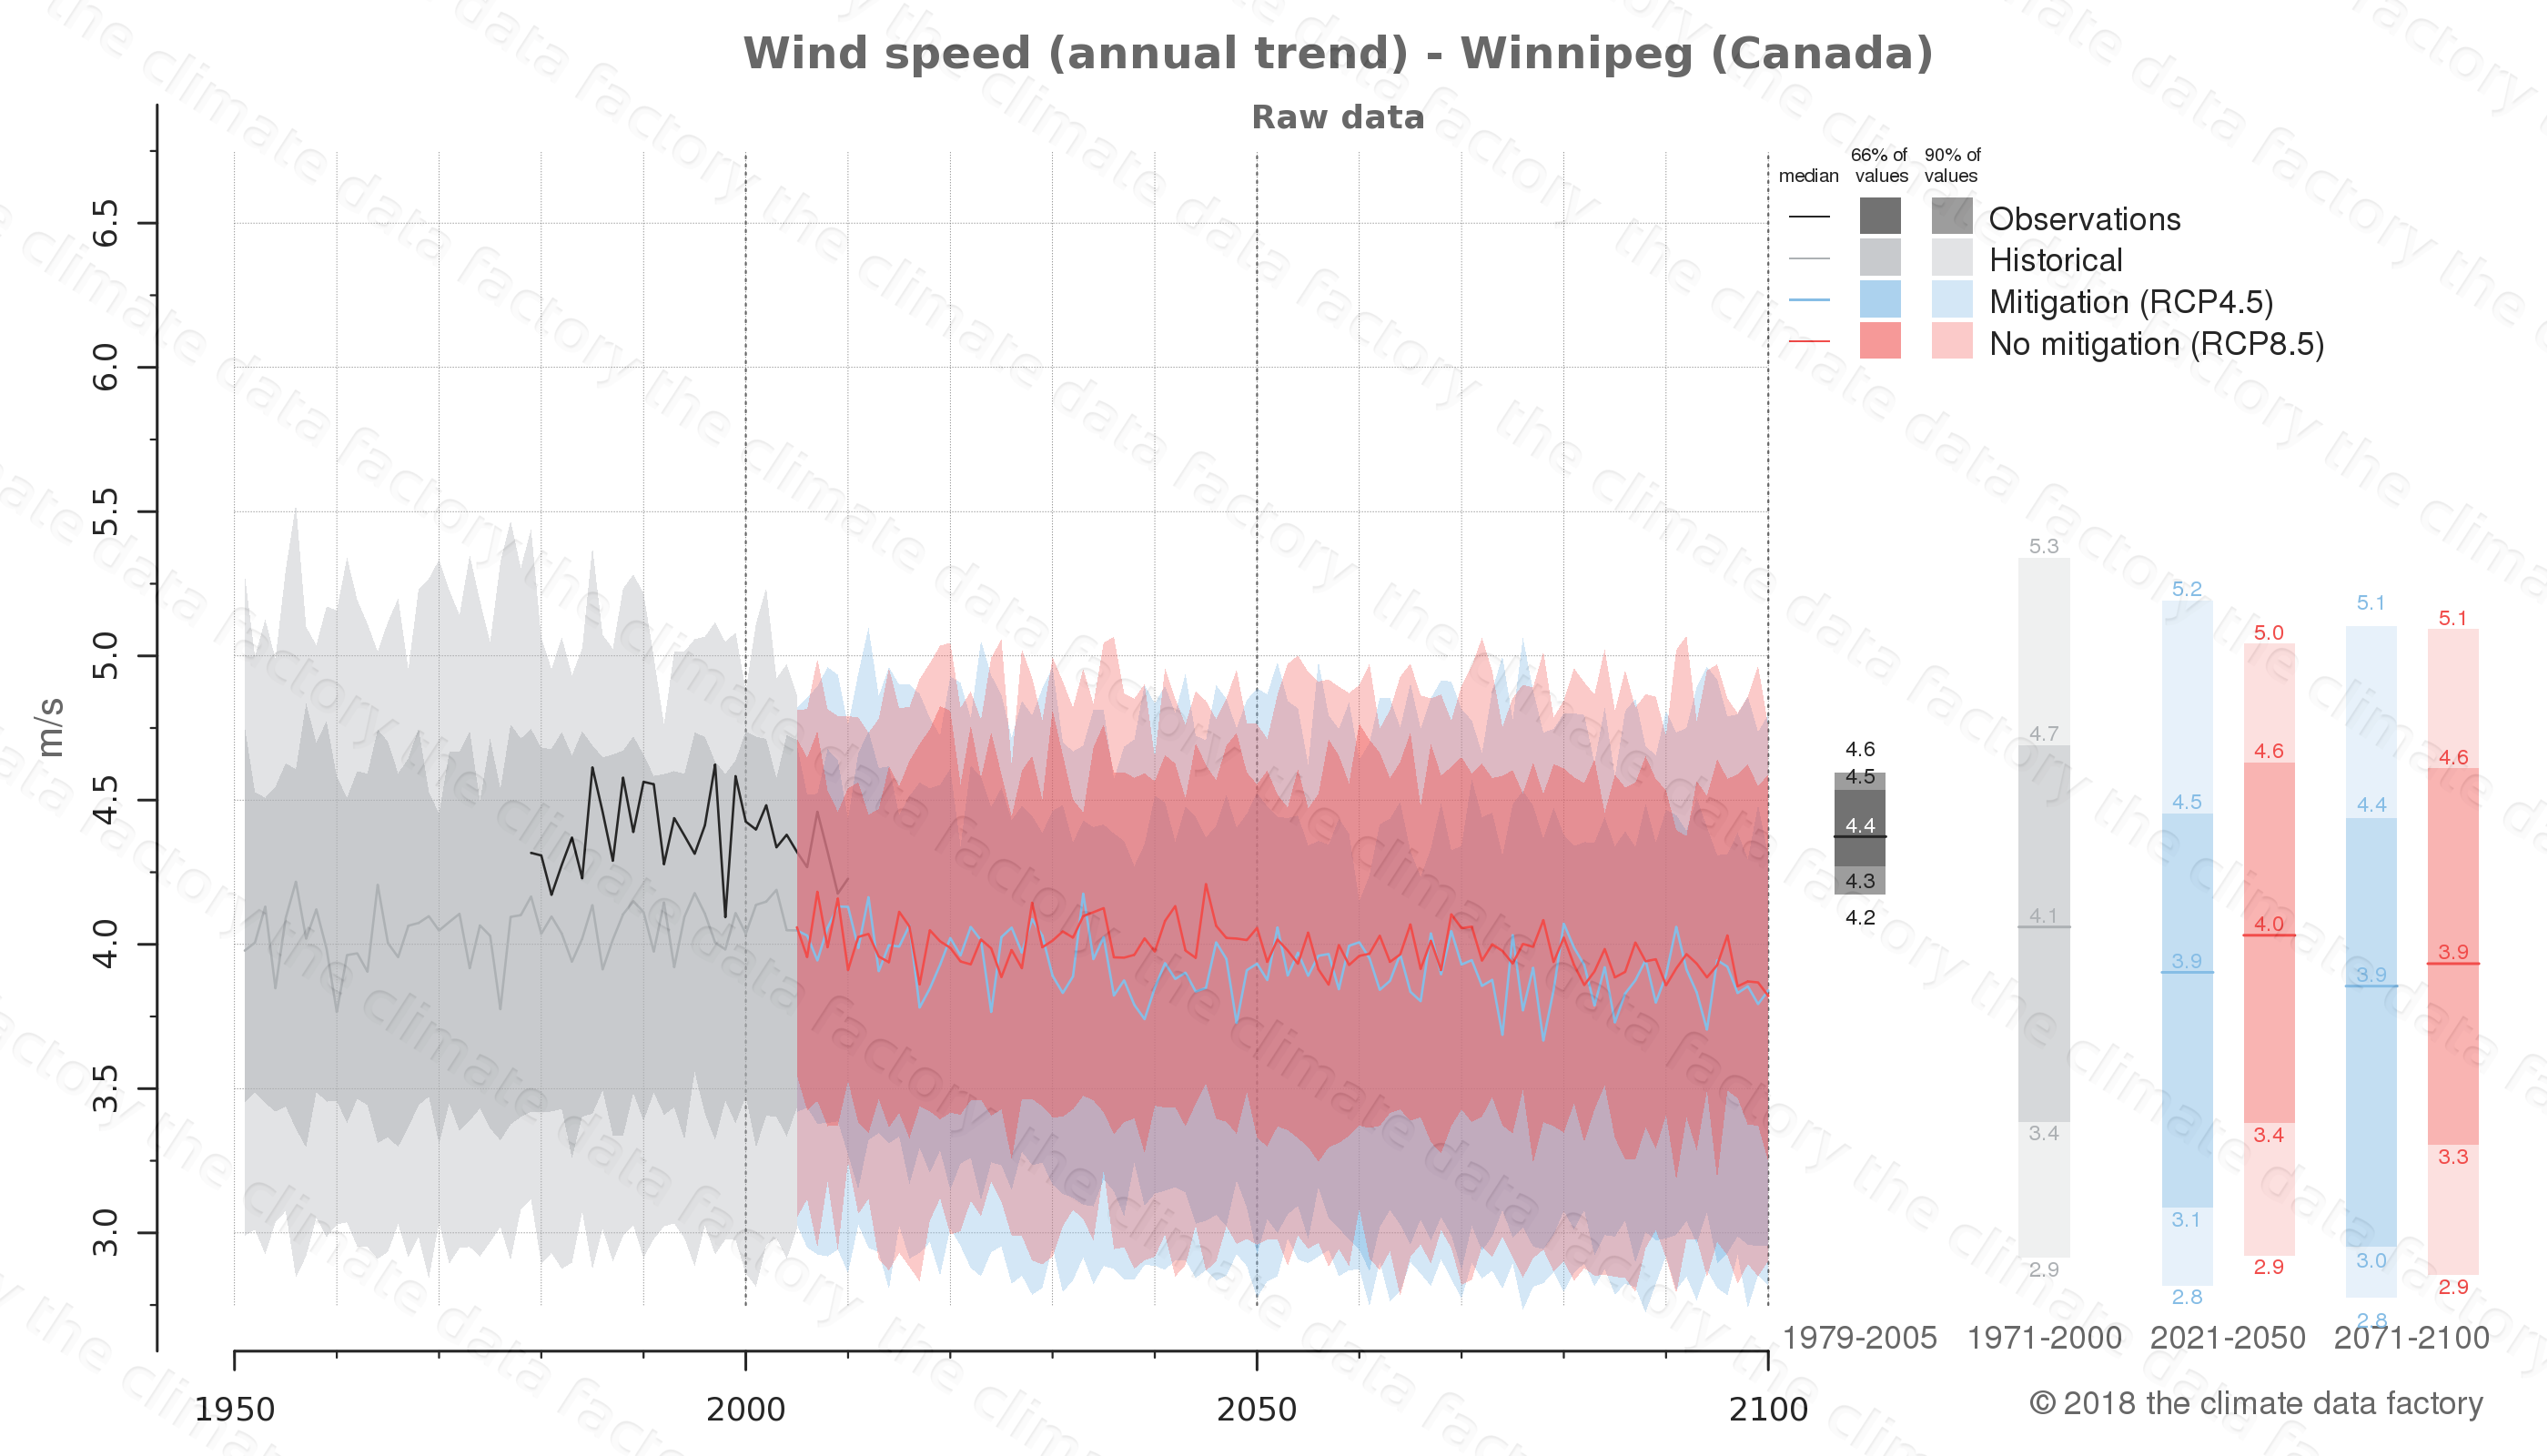 climate change data policy adaptation climate graph city data wind-speed winnipeg canada